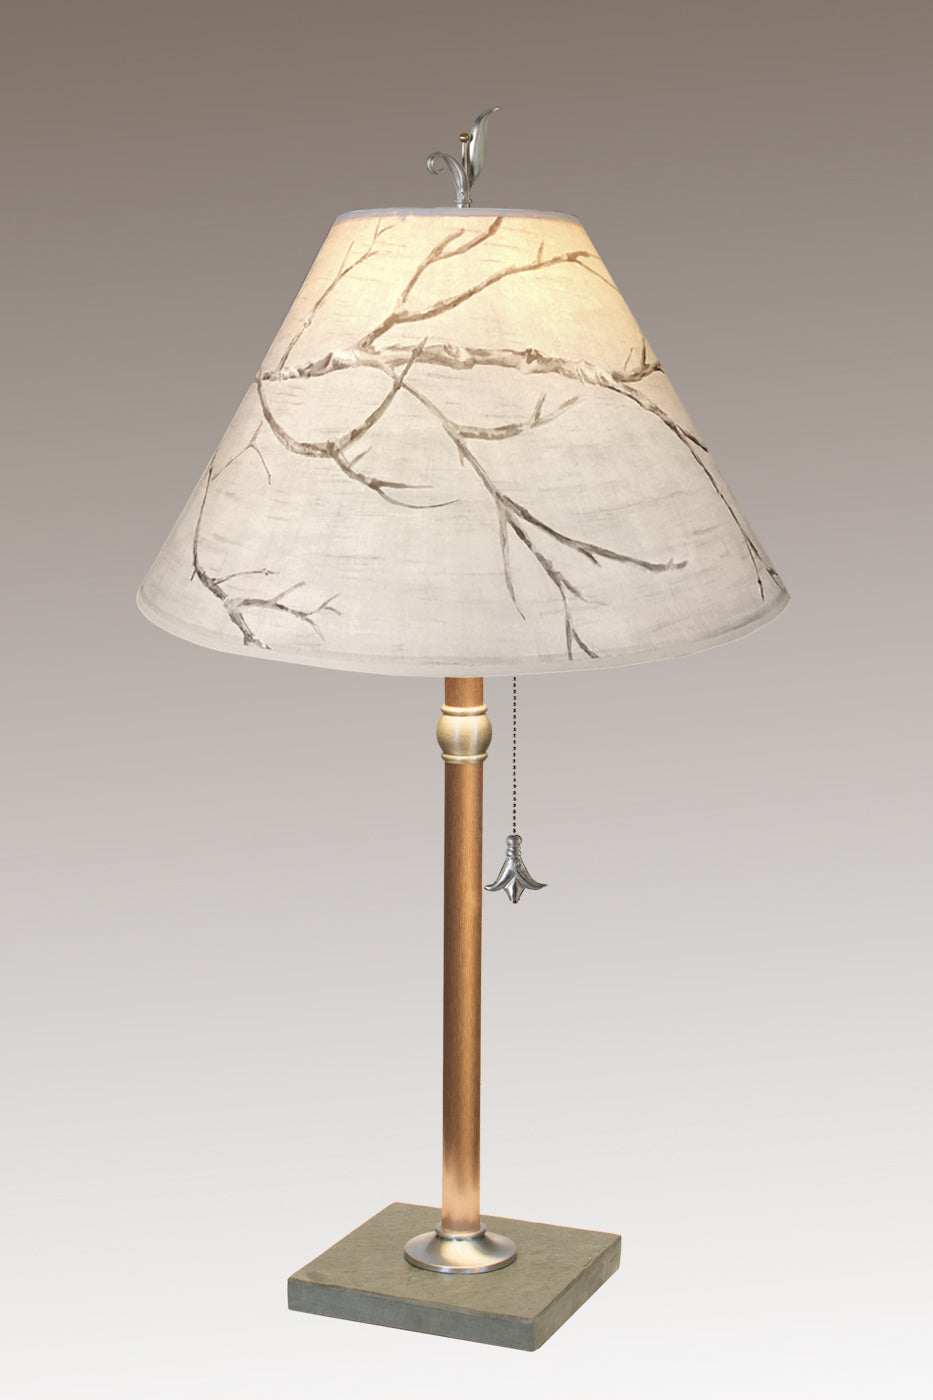 Copper Table Lamp on Vermont Slate with Medium Conical Shade in Sweeping Branch